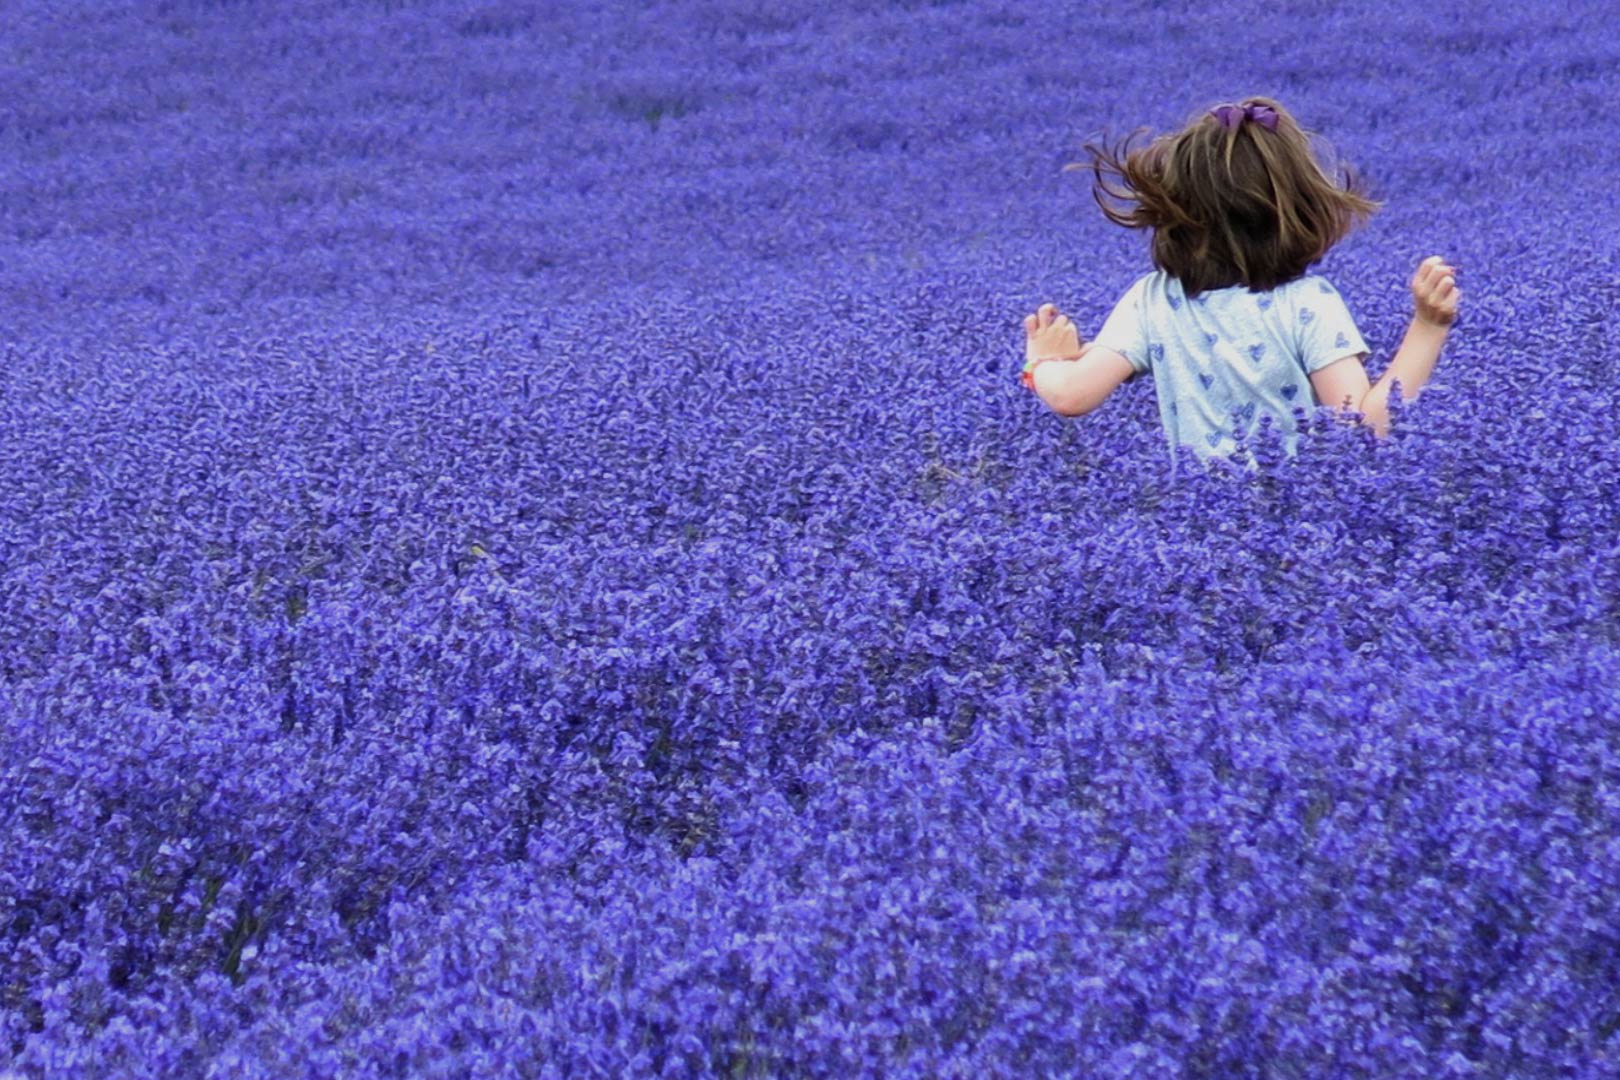 Lavender increases quality of sleep